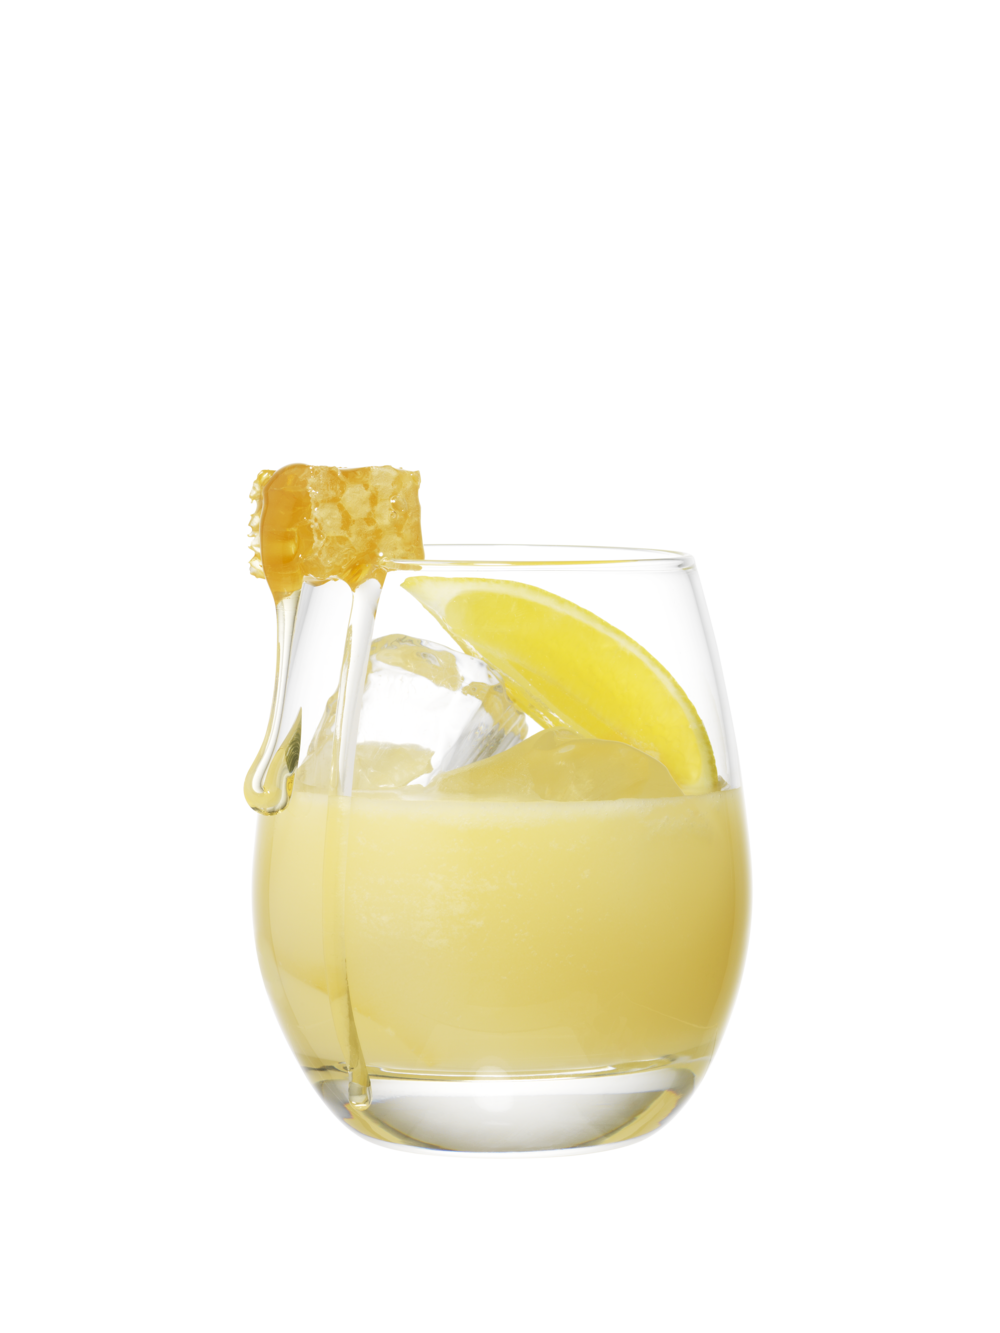 The Sacred Bee - 50ml Dead King Gin15ml Lemon Juice2tsp Lemon Curd1tsp Orange Blossom Honey